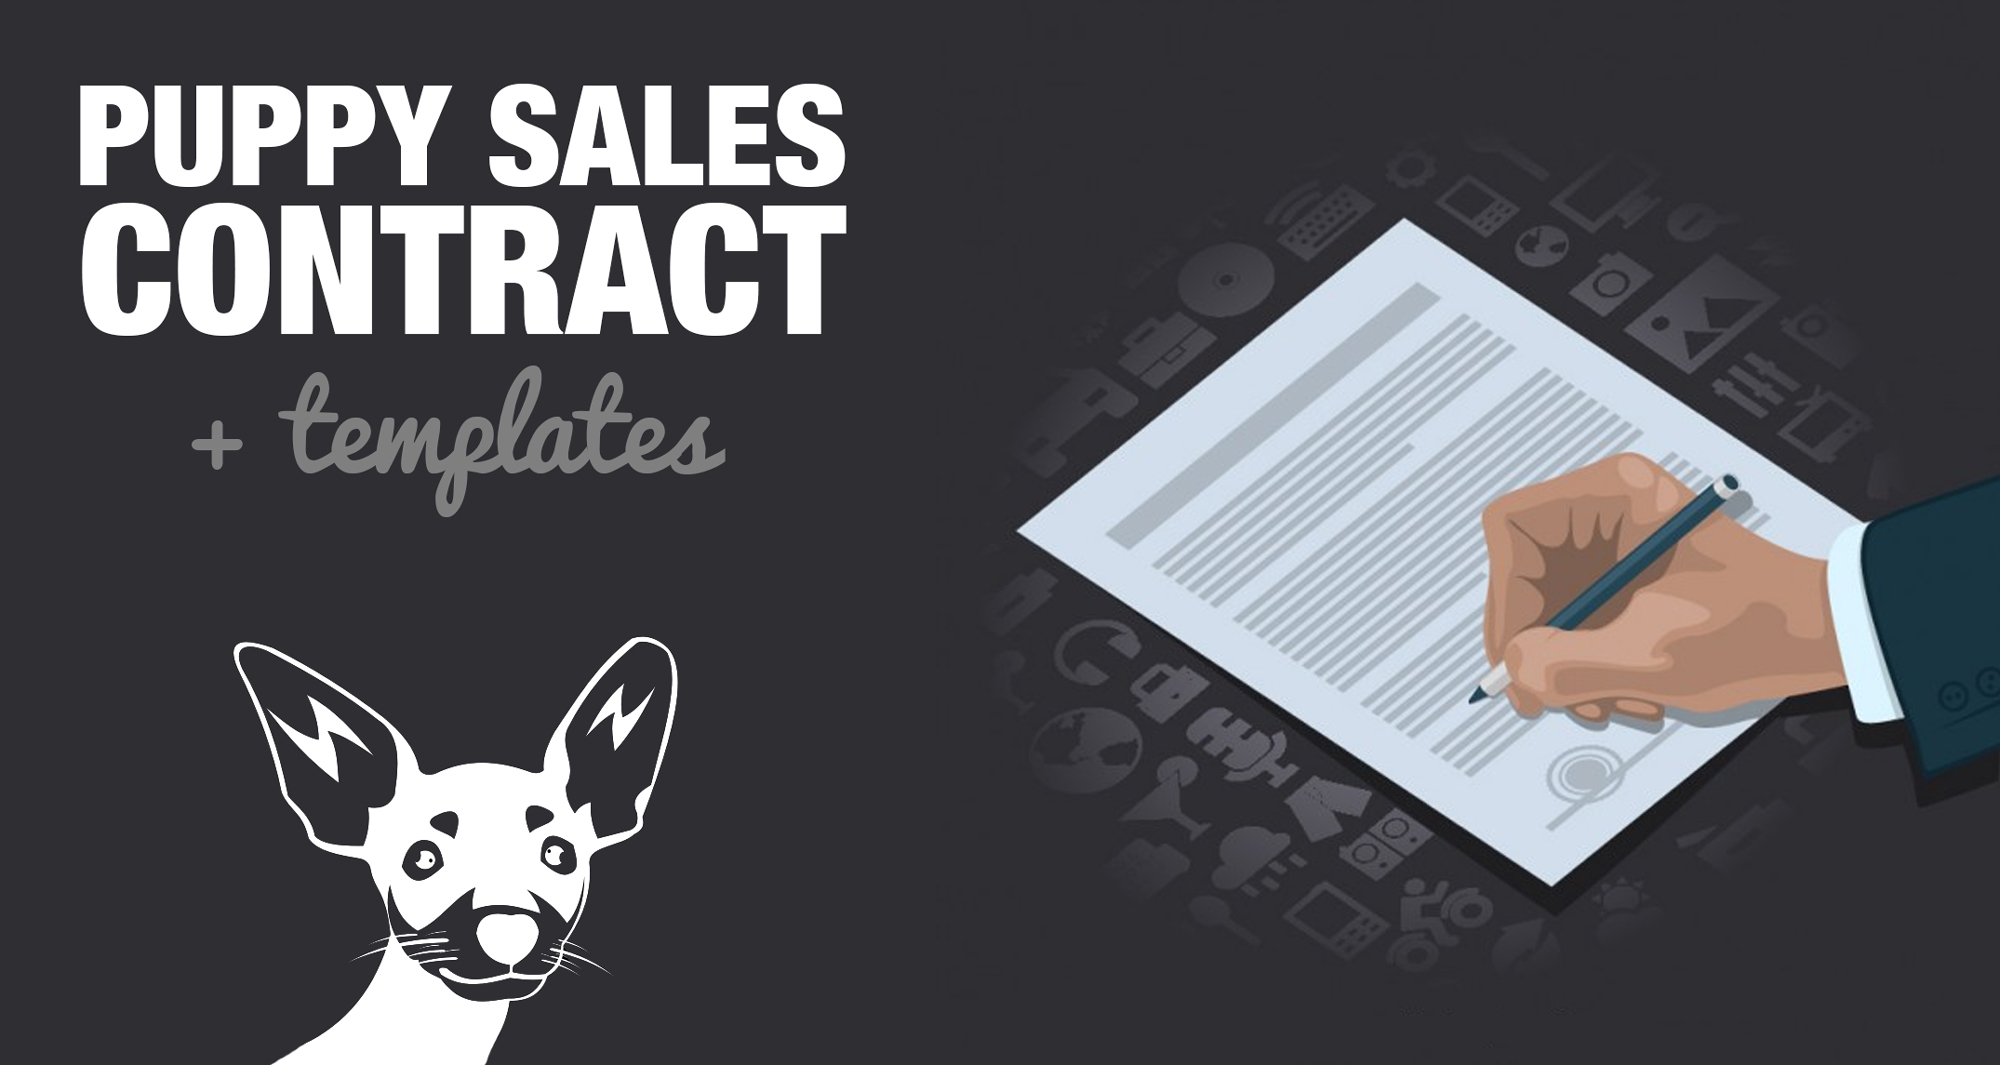 Free Puppy Sales Contract Template WordDOC Sample – Free Sales Contract Template